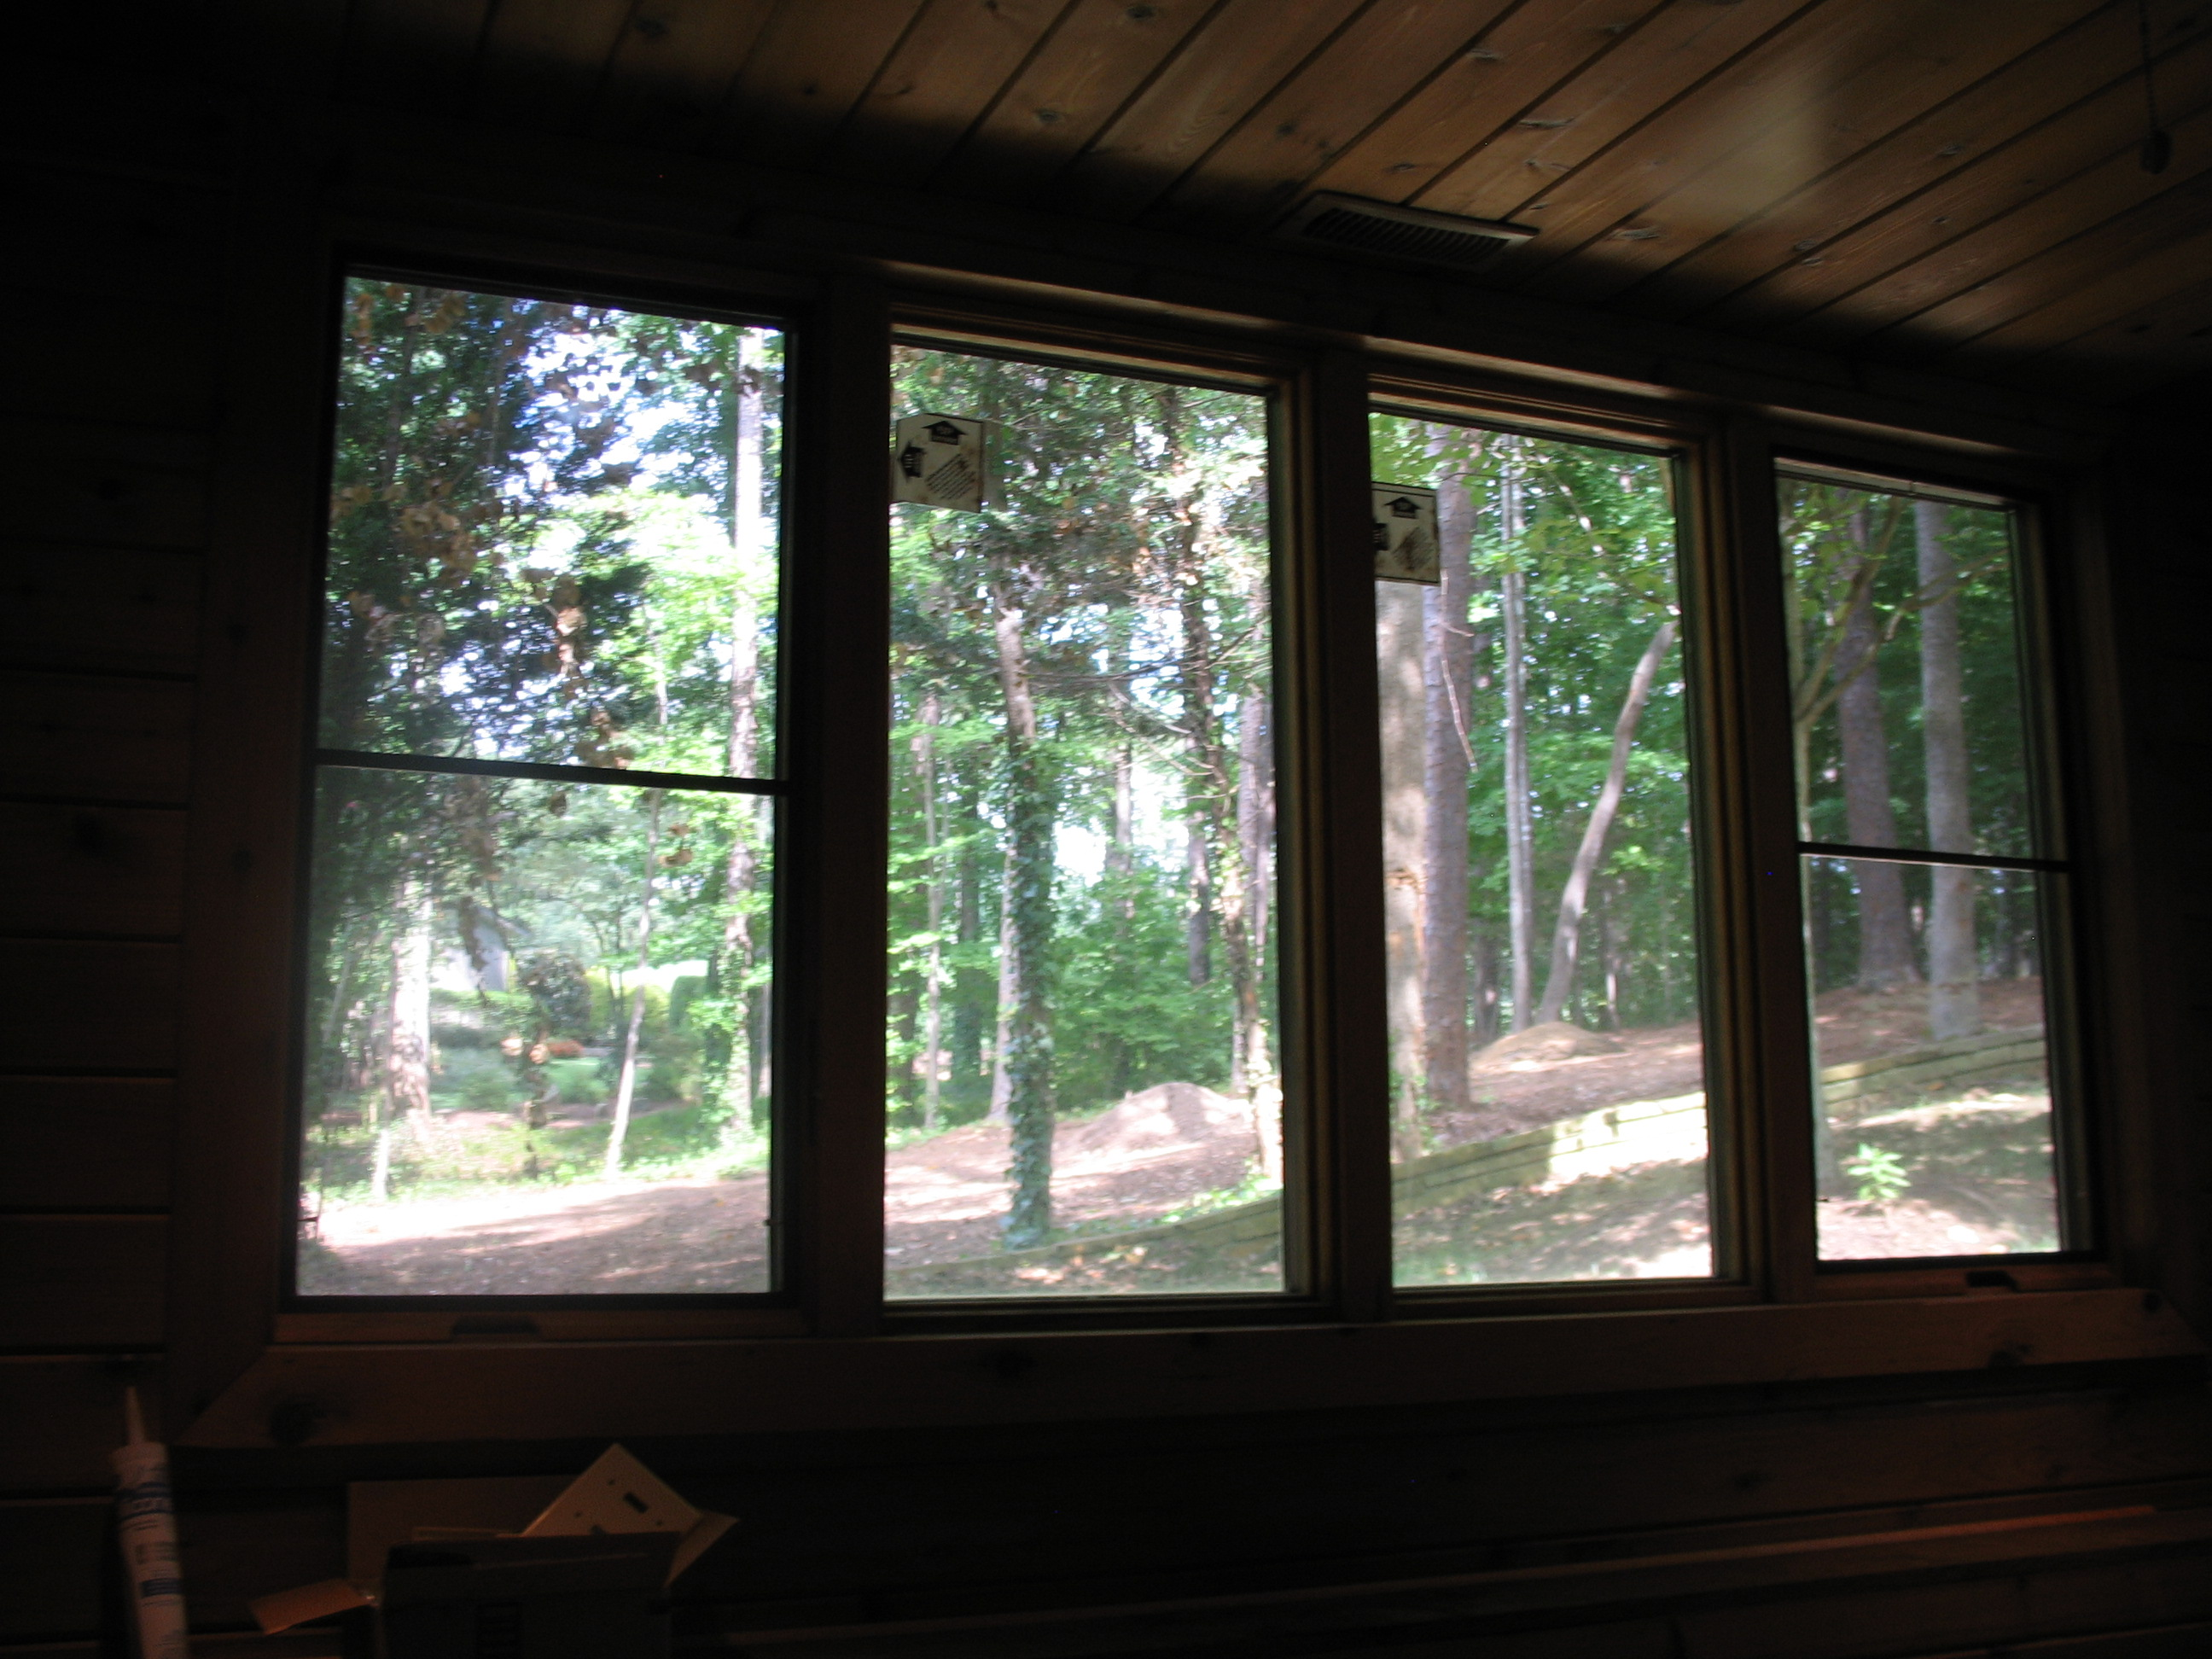 Macgregor Downs Cary Nc Pool House Window Screen Install